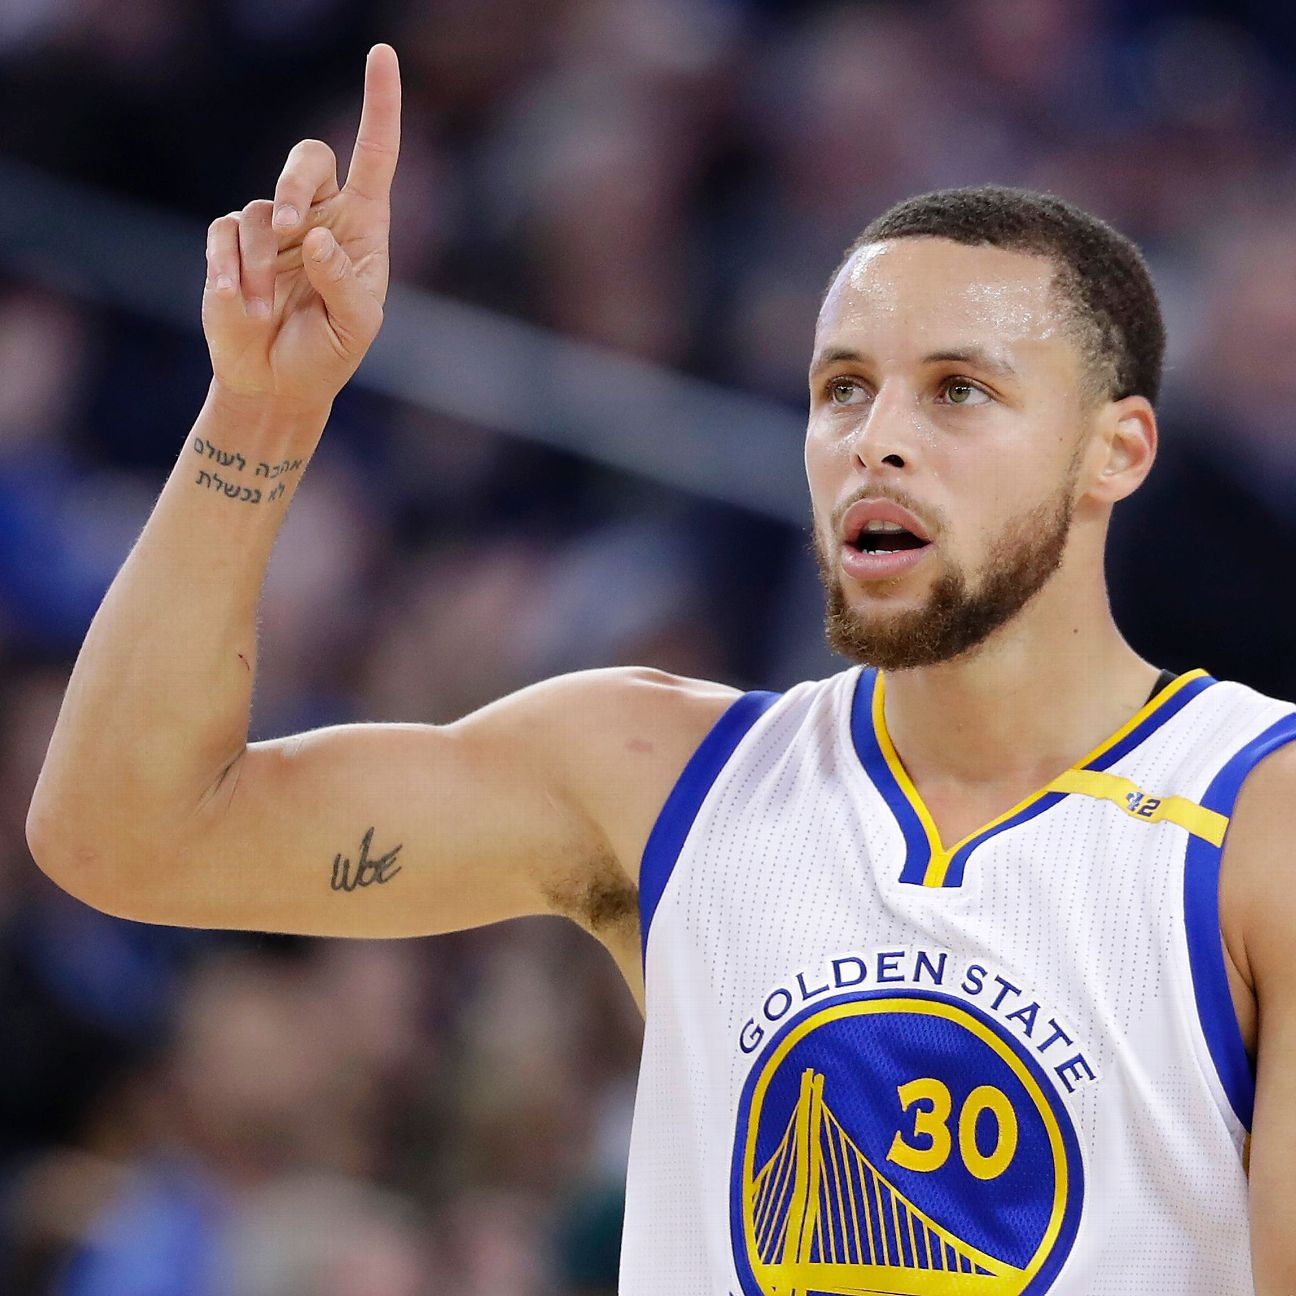 Warriors Record Without Stephen Curry 2017: Stephen Curry Gets Hot Early And Often For Golden State